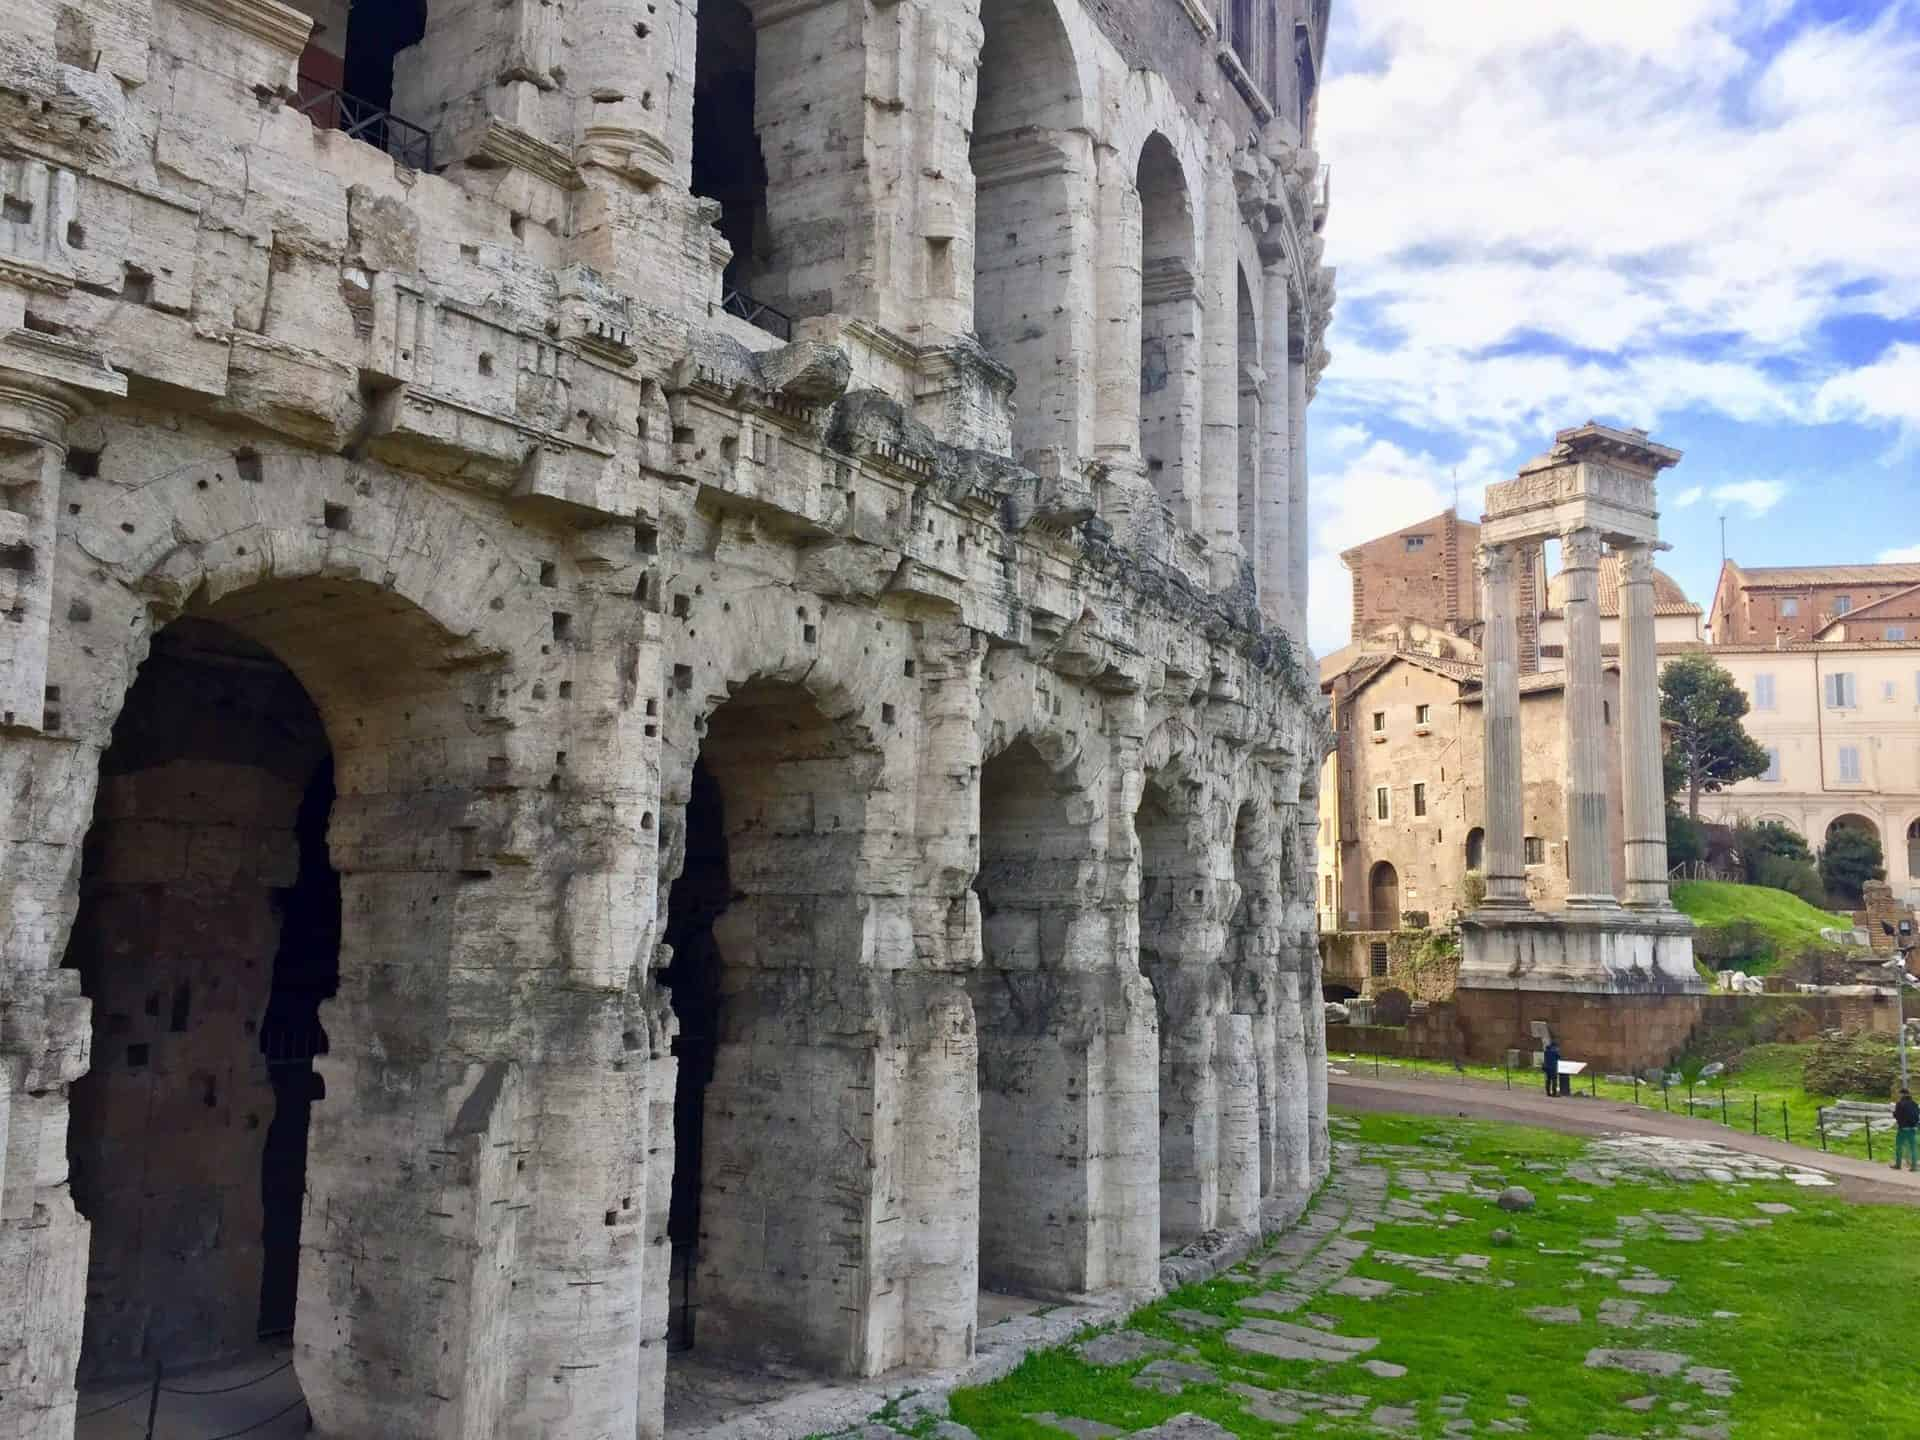 rome_fromcapitoline4) Theatre of Marcellus